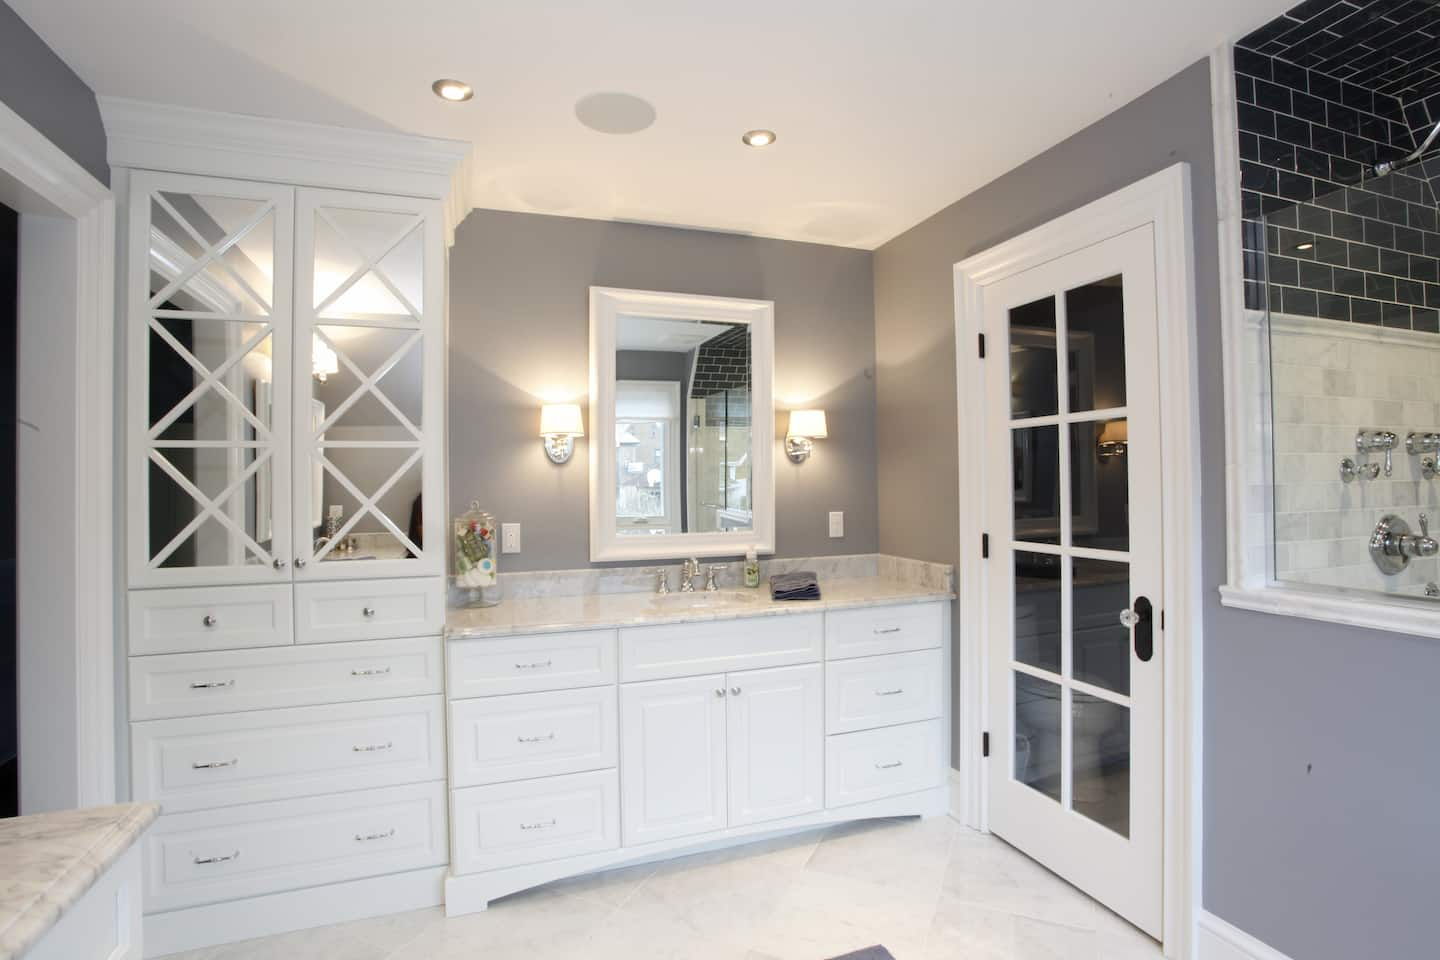 Remodeled Bathroom With White Cabinets And A Corner Tower Cabinet